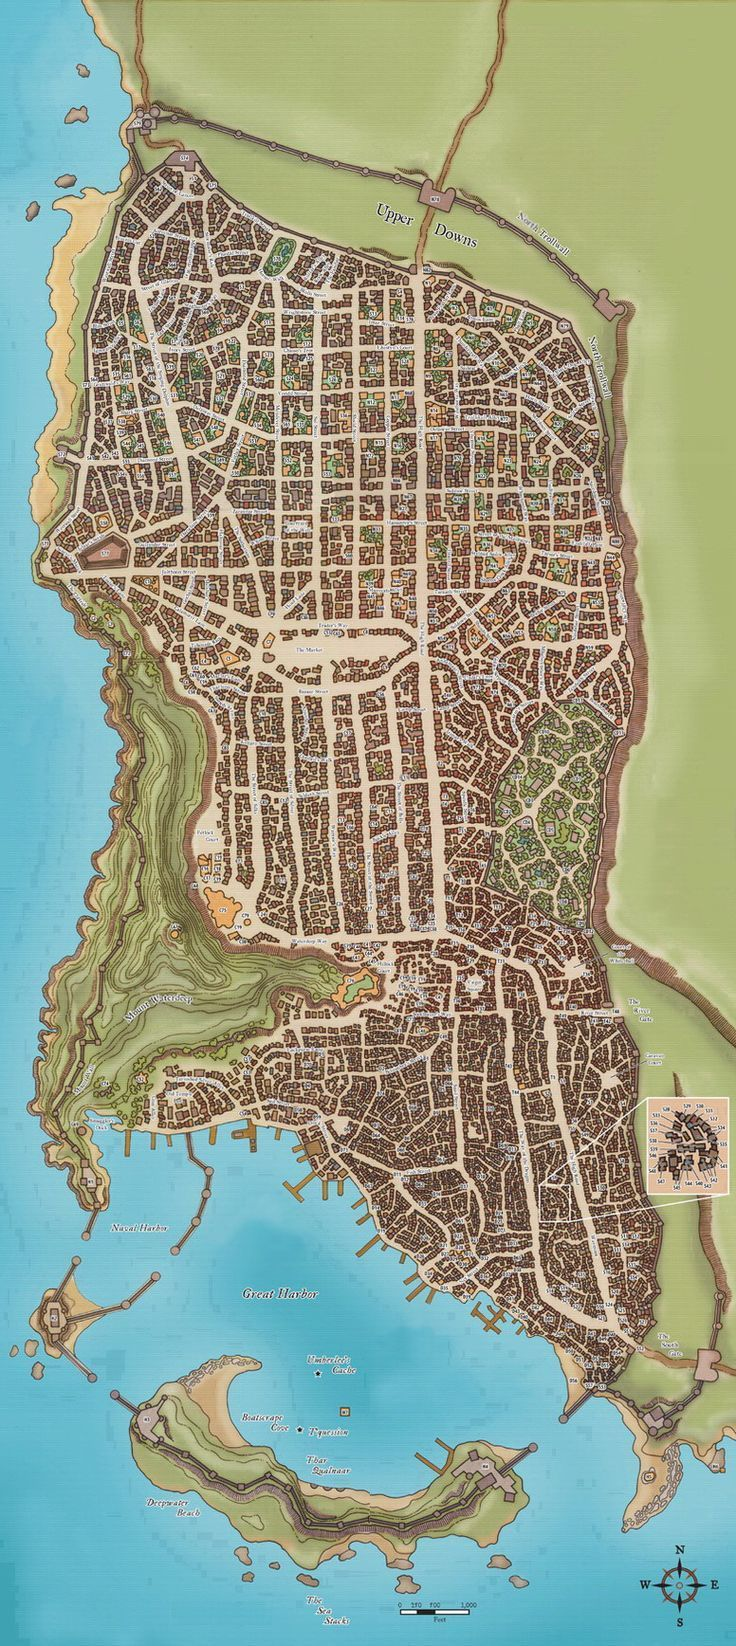 how to create a fantasy story and map